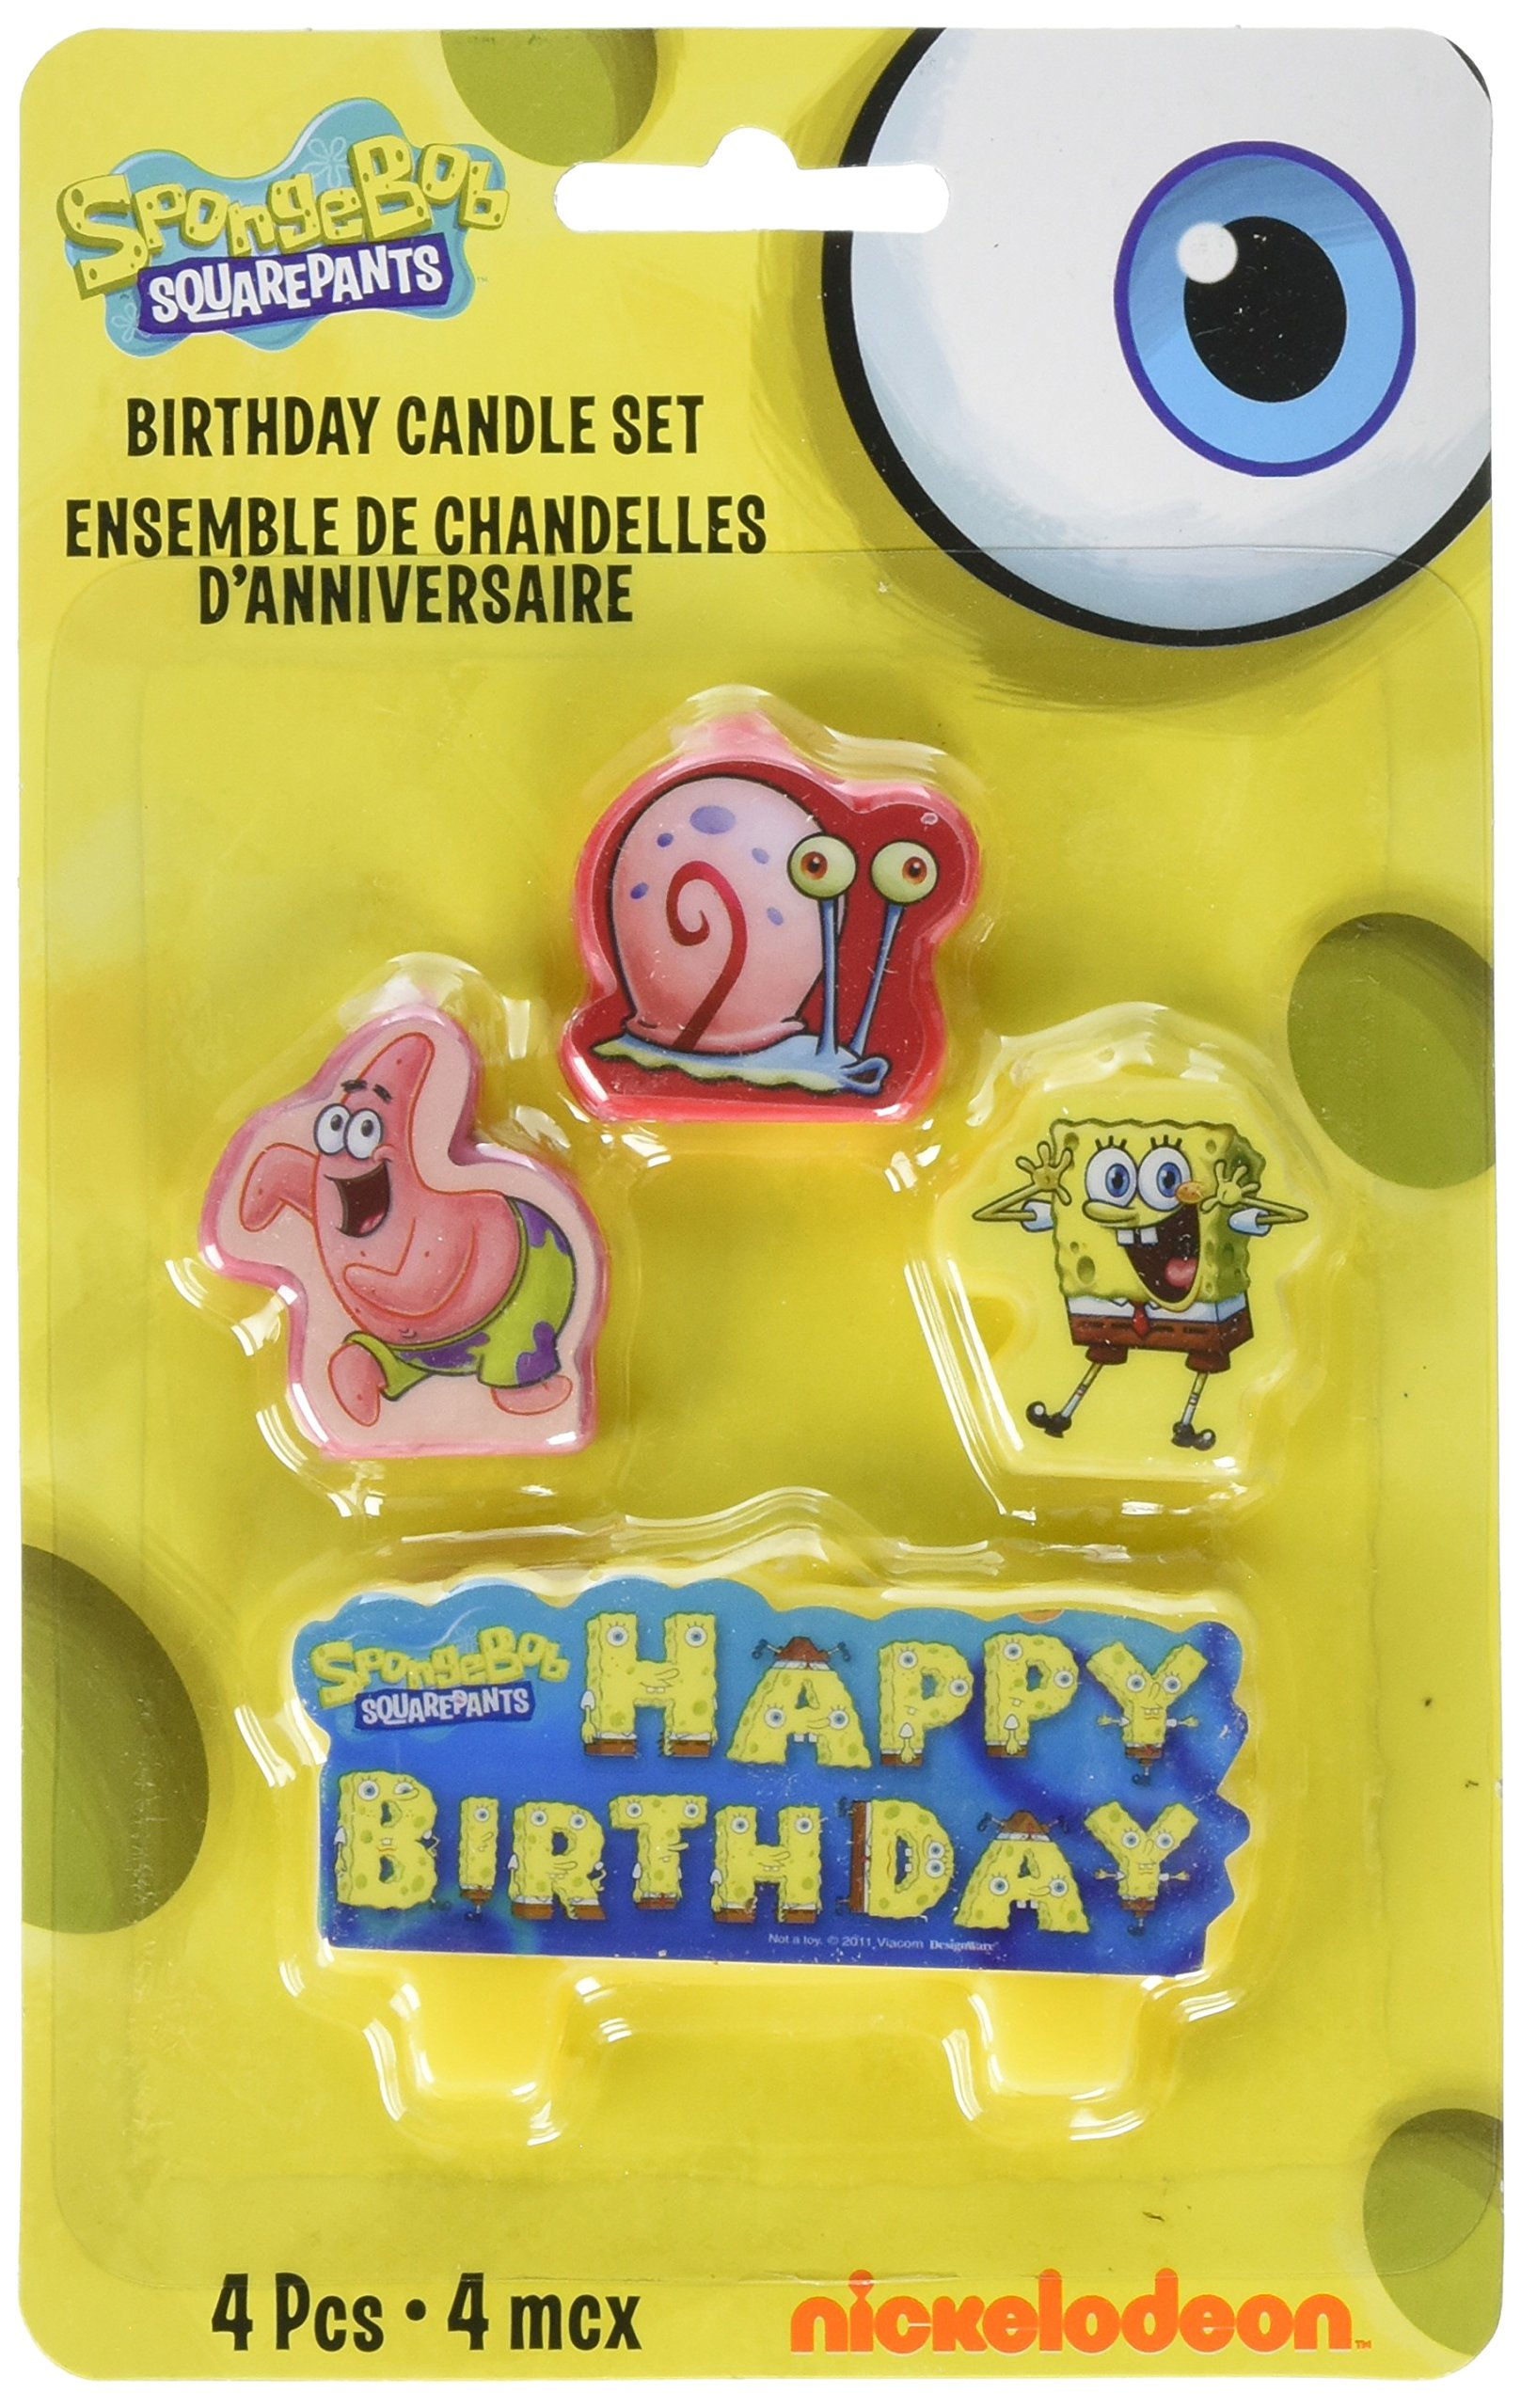 Amscan Party Time Spongebob Molded Mini Character Birthday Candle Set, Pack of 4, Multi Wax Childrens-Cake-Decorations, Multicolor /Wax, 1.25''